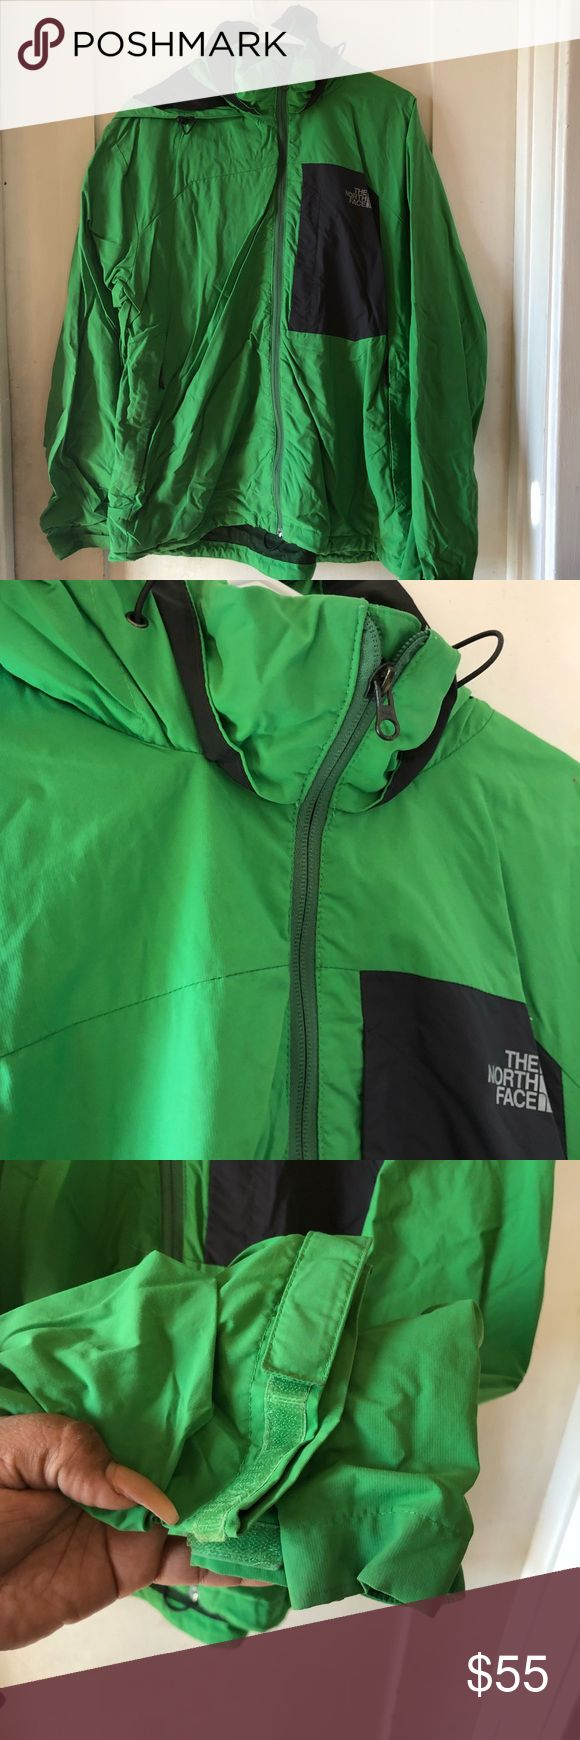 NorthFace men's jacket Preloved with signs of gentle wear as shown on pics. Authentic. I have more styles and sizes. North Face Jackets & Coats